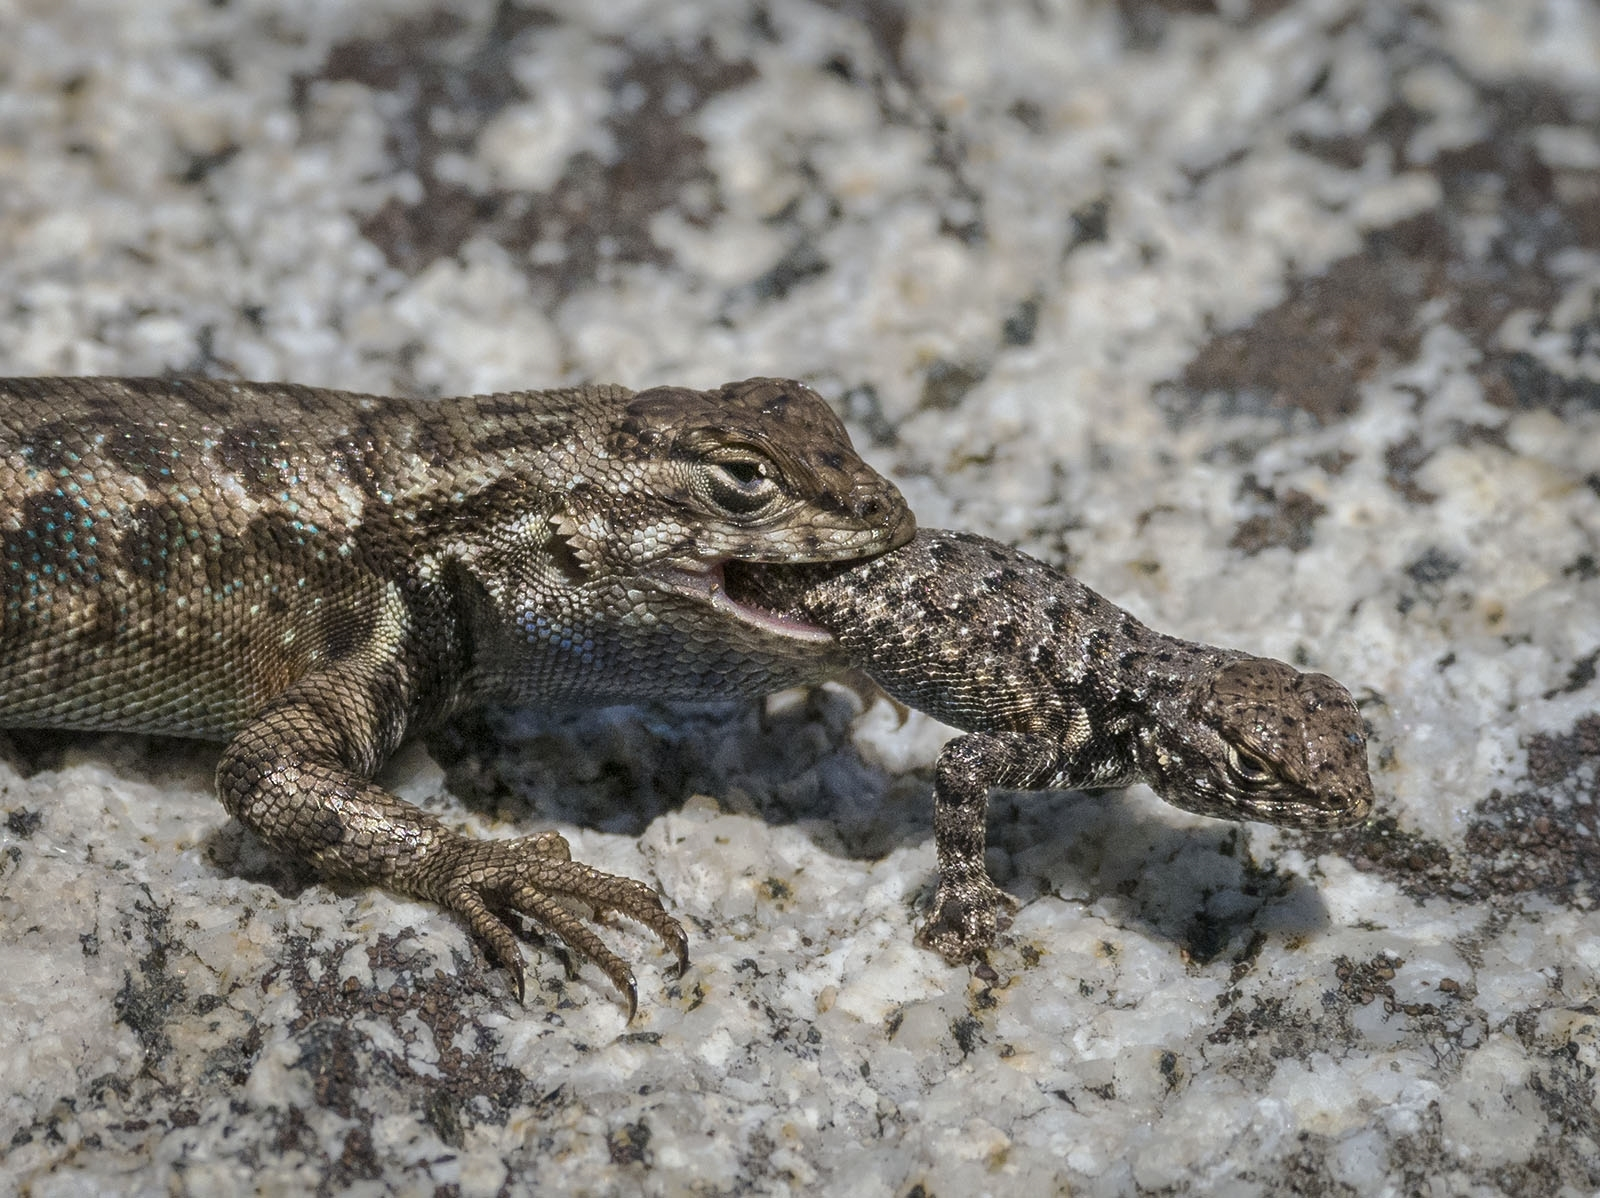 'A Southern Brush Lizard cannibalizing another...' (NM Best in Show) by Diana Rebman - ML